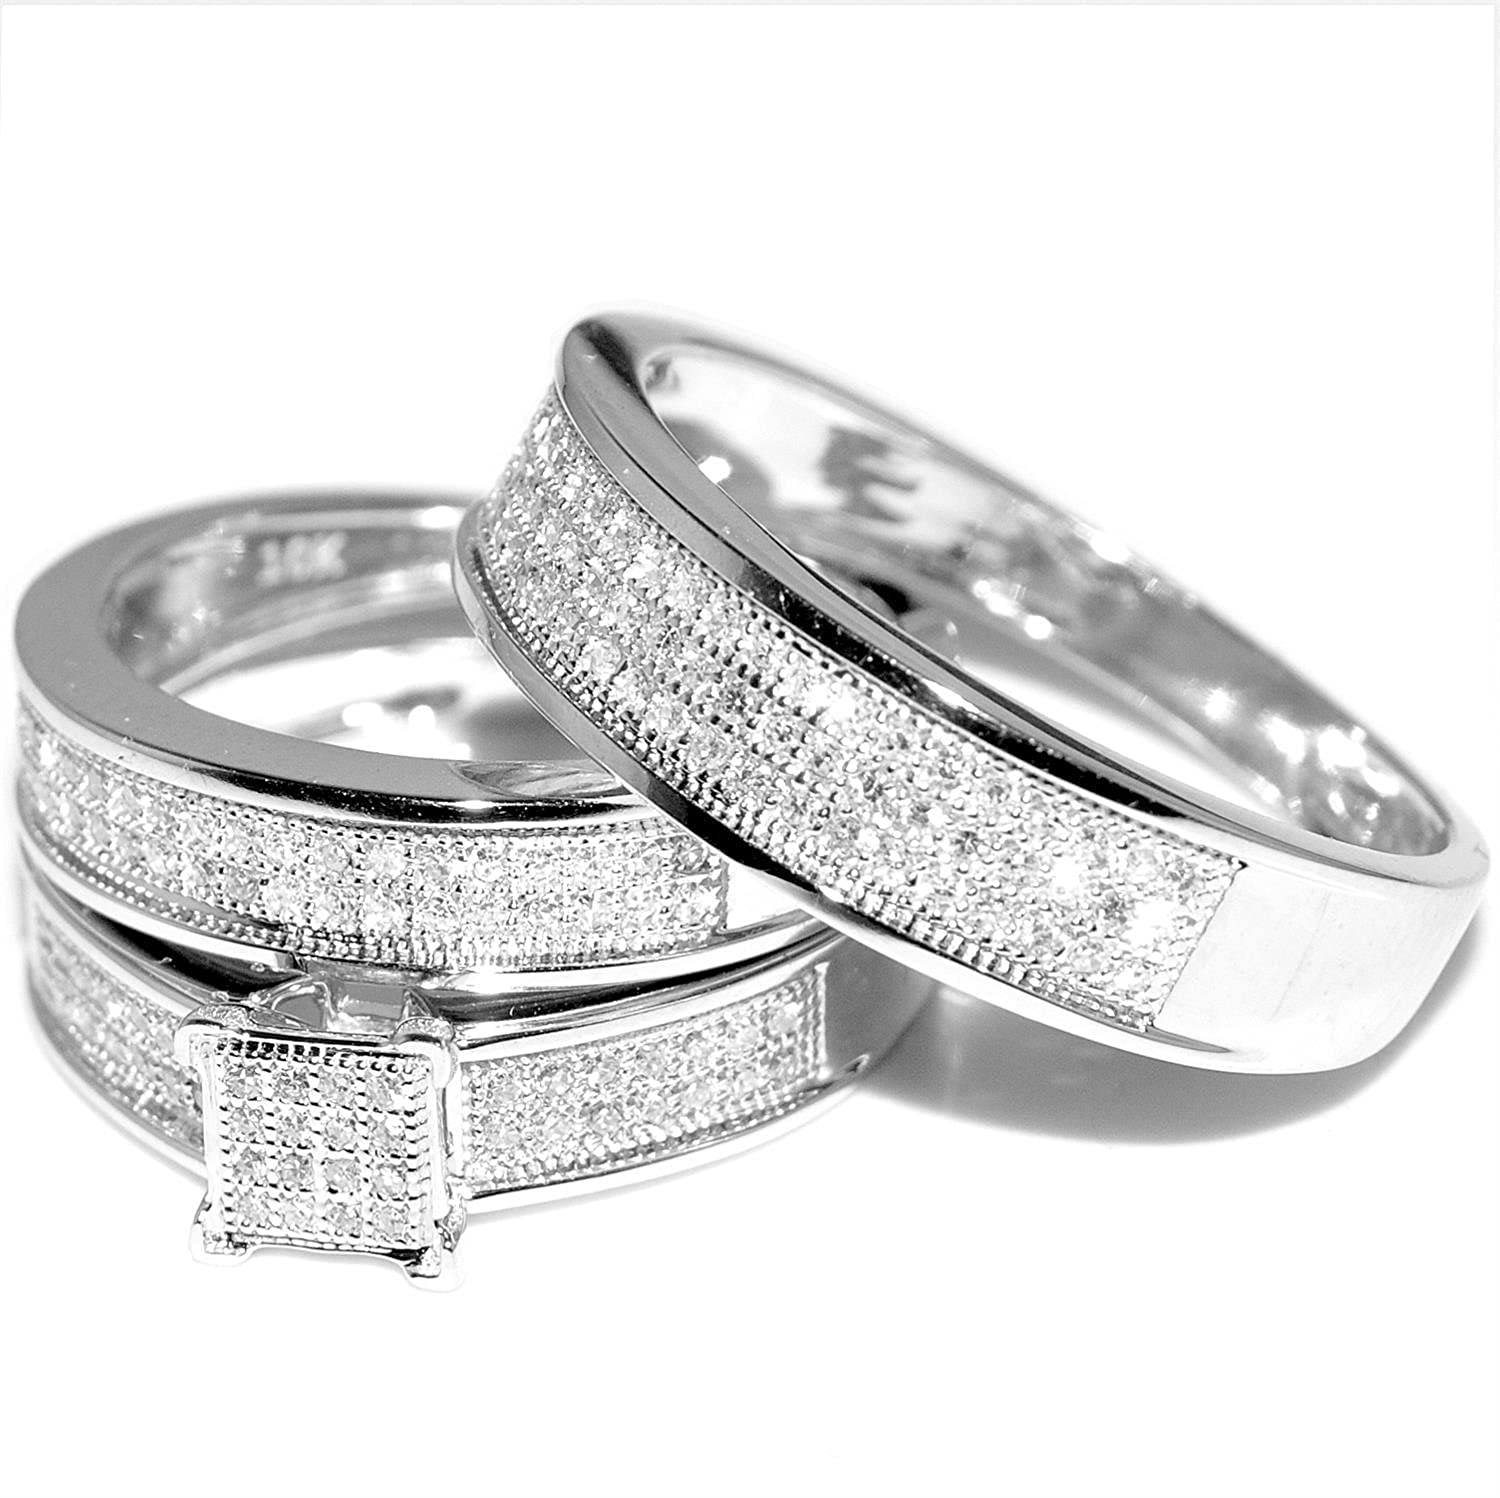 white gold trio wedding set mens womens wedding rings matching 040cttw diamondamazoncom - Cheap Diamond Wedding Rings